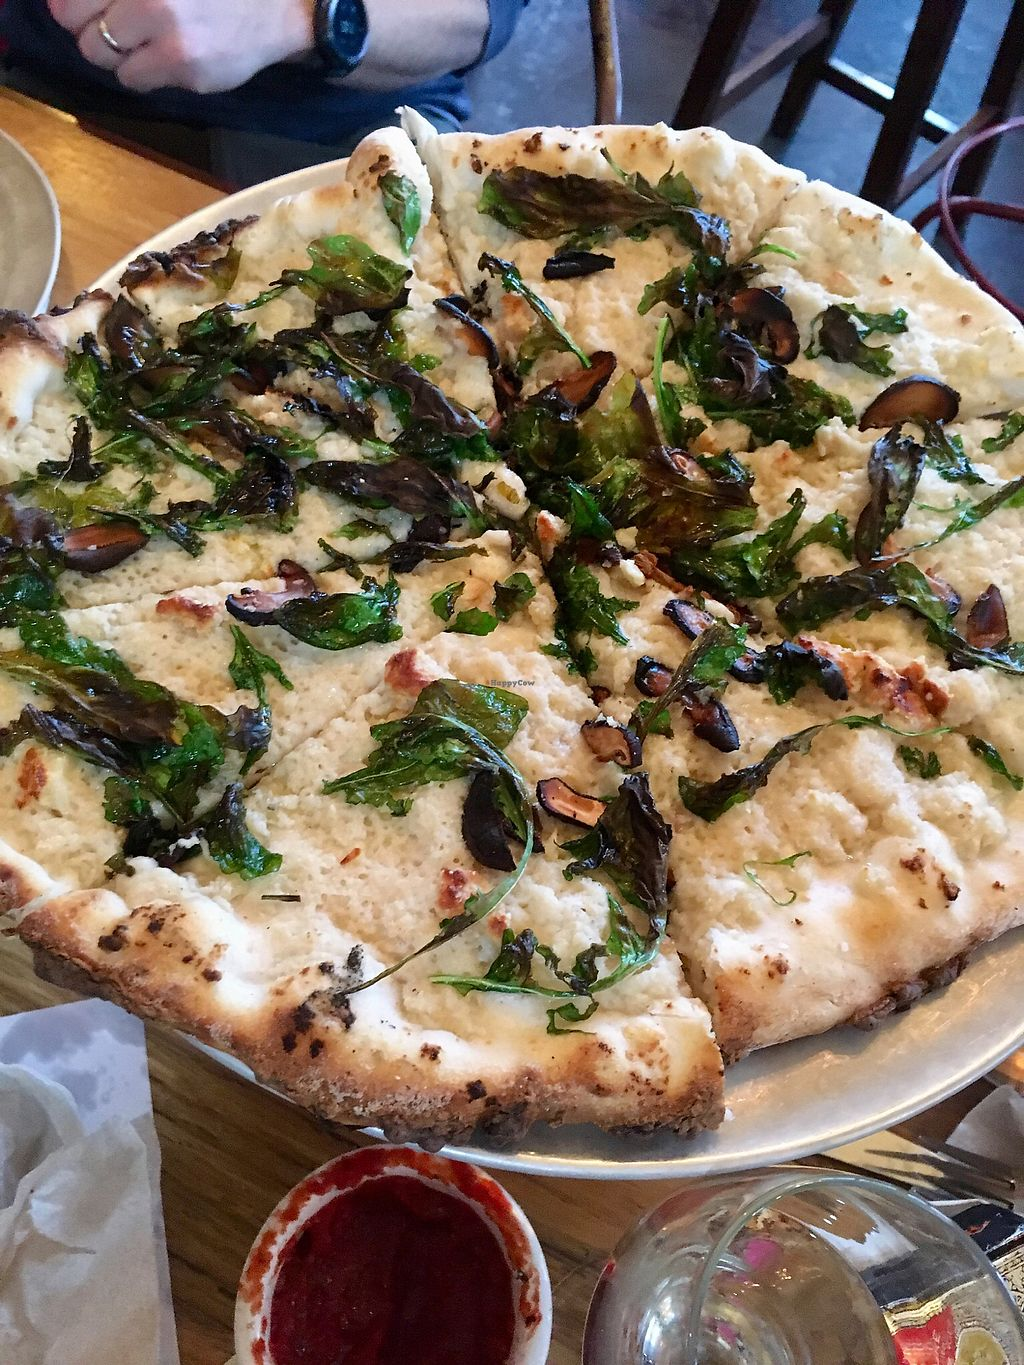 "Photo of Piante Pizzeria  by <a href=""/members/profile/Jennbikk"">Jennbikk</a> <br/>White pie. My new favorite!!  <br/> April 14, 2018  - <a href='/contact/abuse/image/84461/385495'>Report</a>"